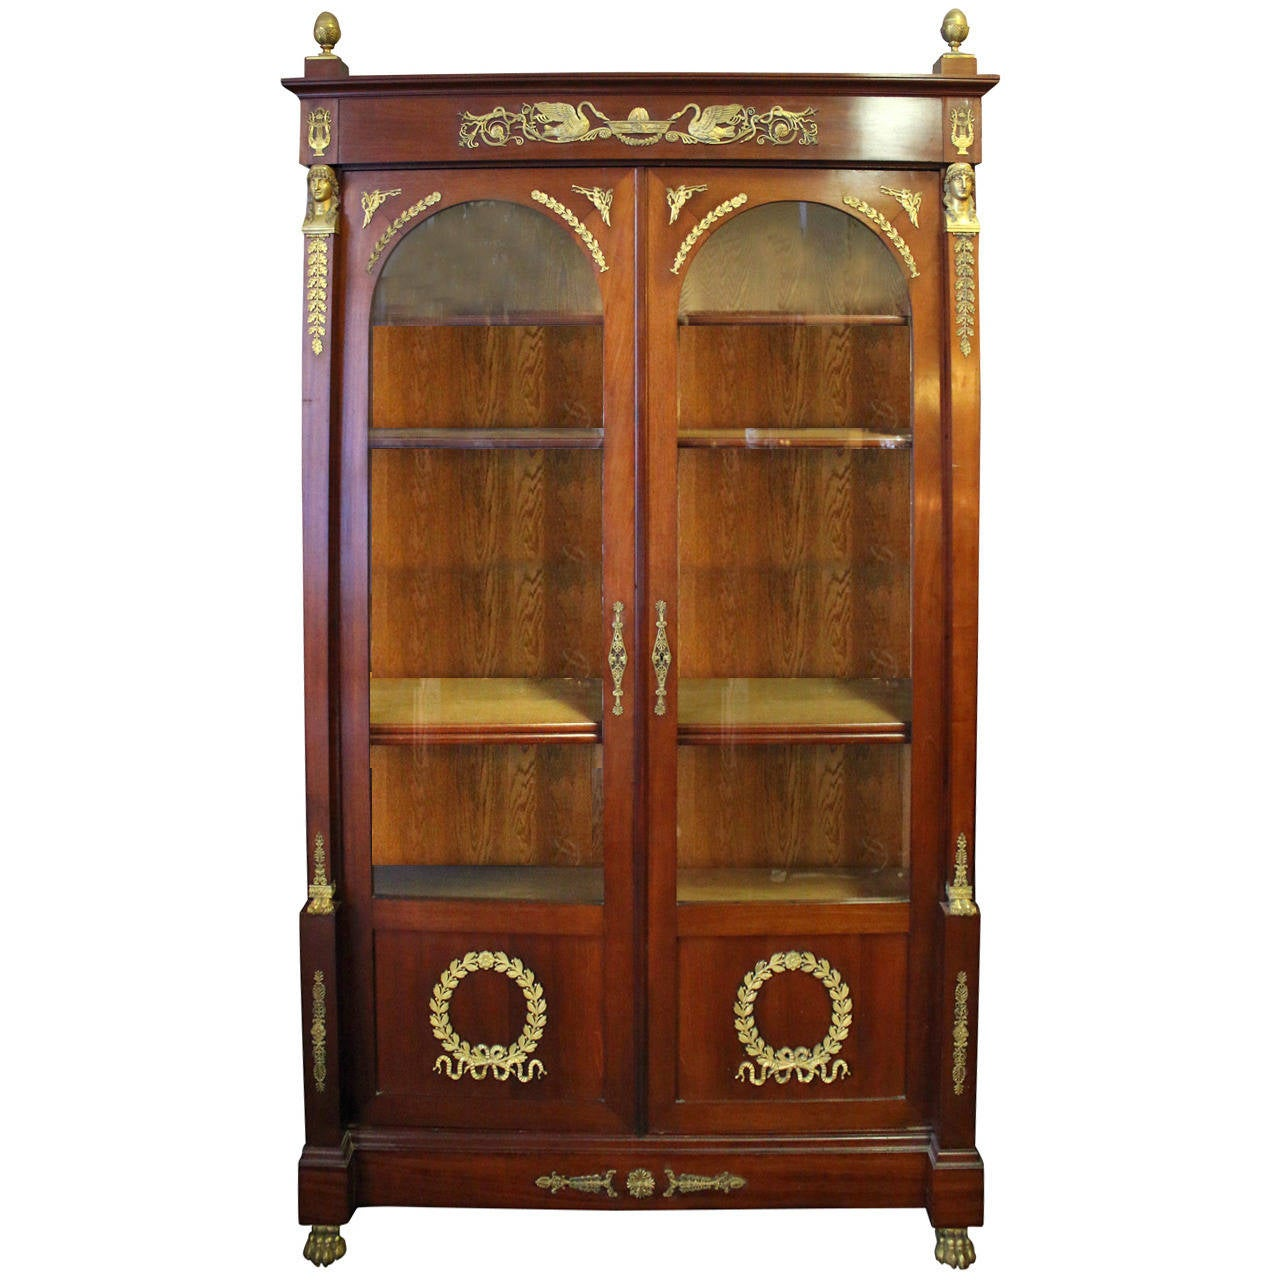 19th Century Empire Style French Mahogany Bookcase